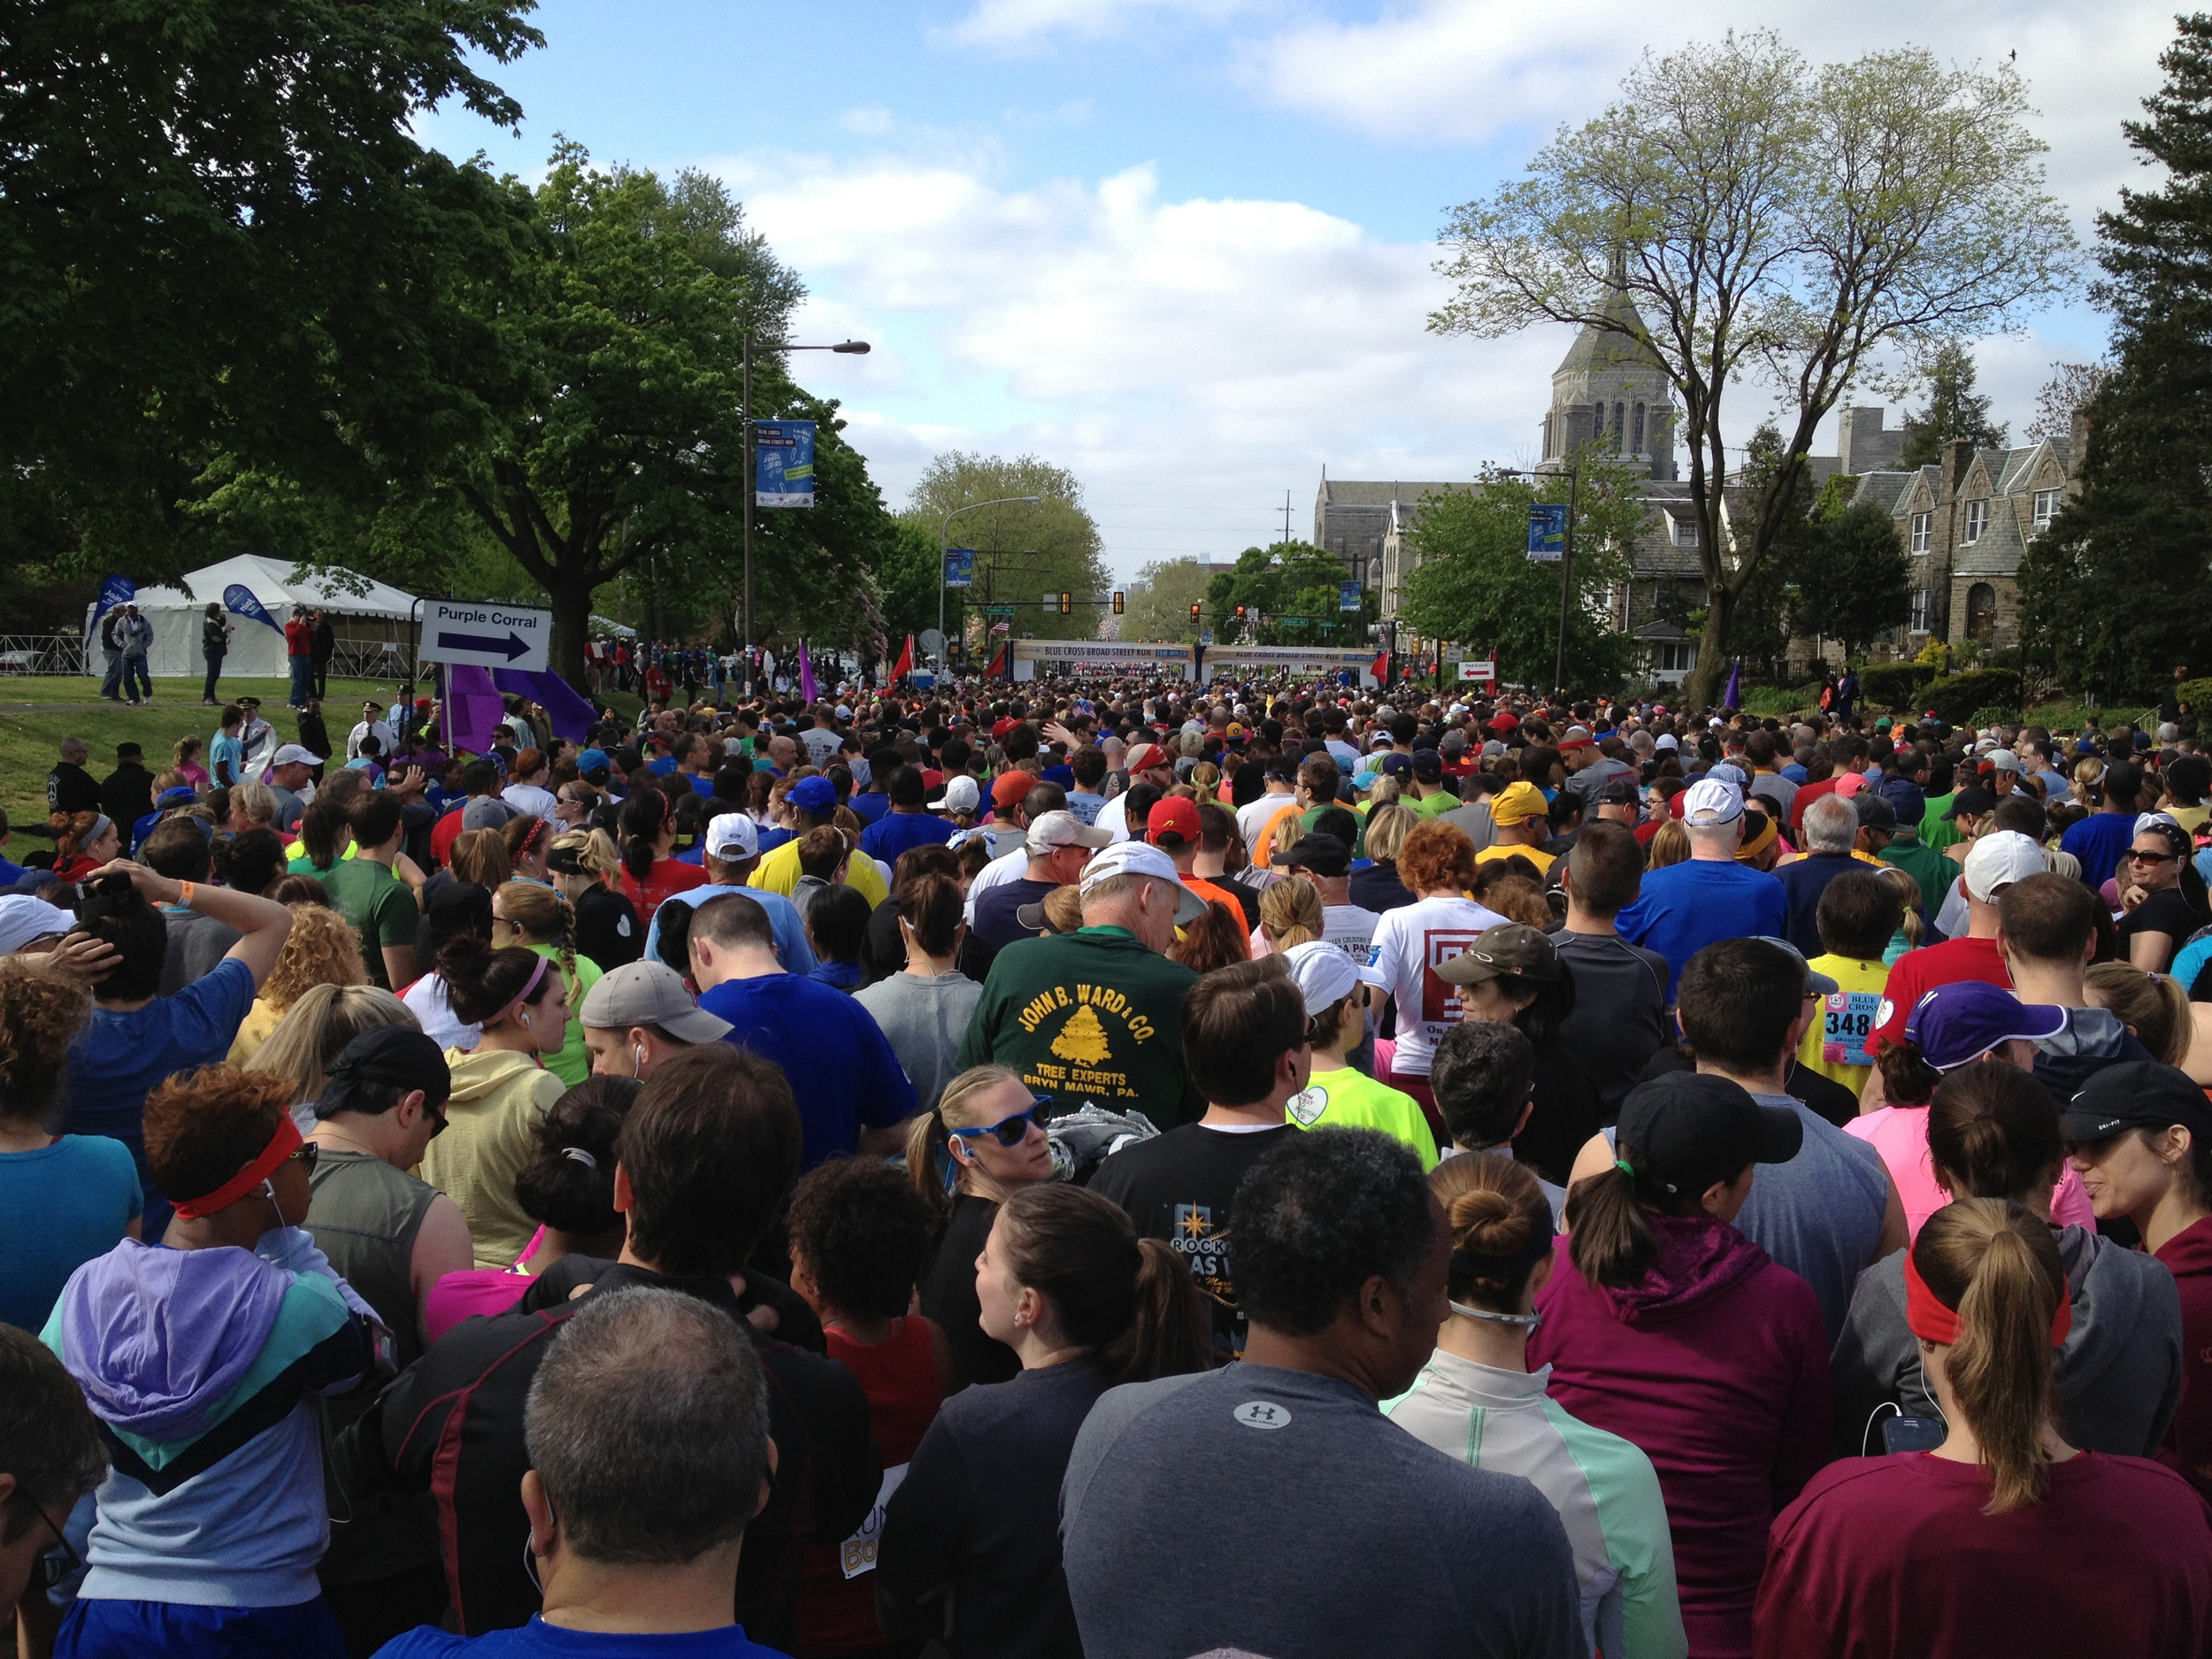 Getting ready to start the race.